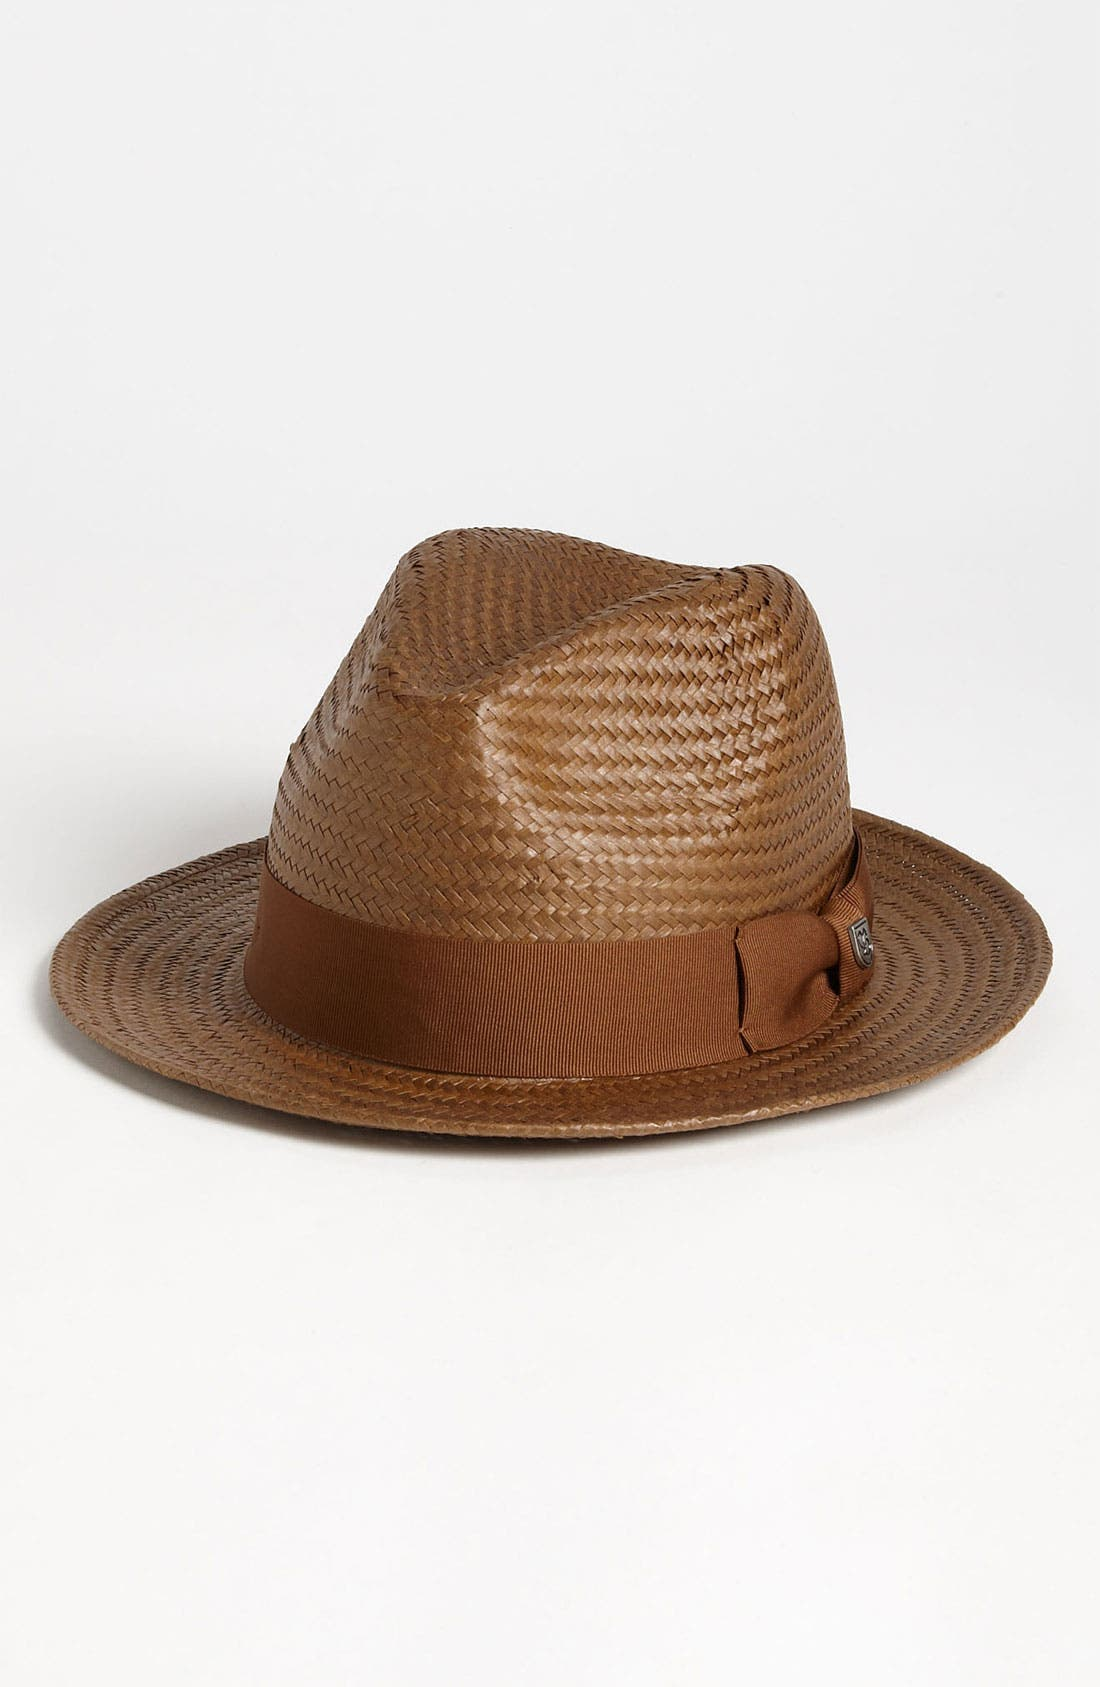 Alternate Image 1 Selected - Brixton 'Jasper' Fedora